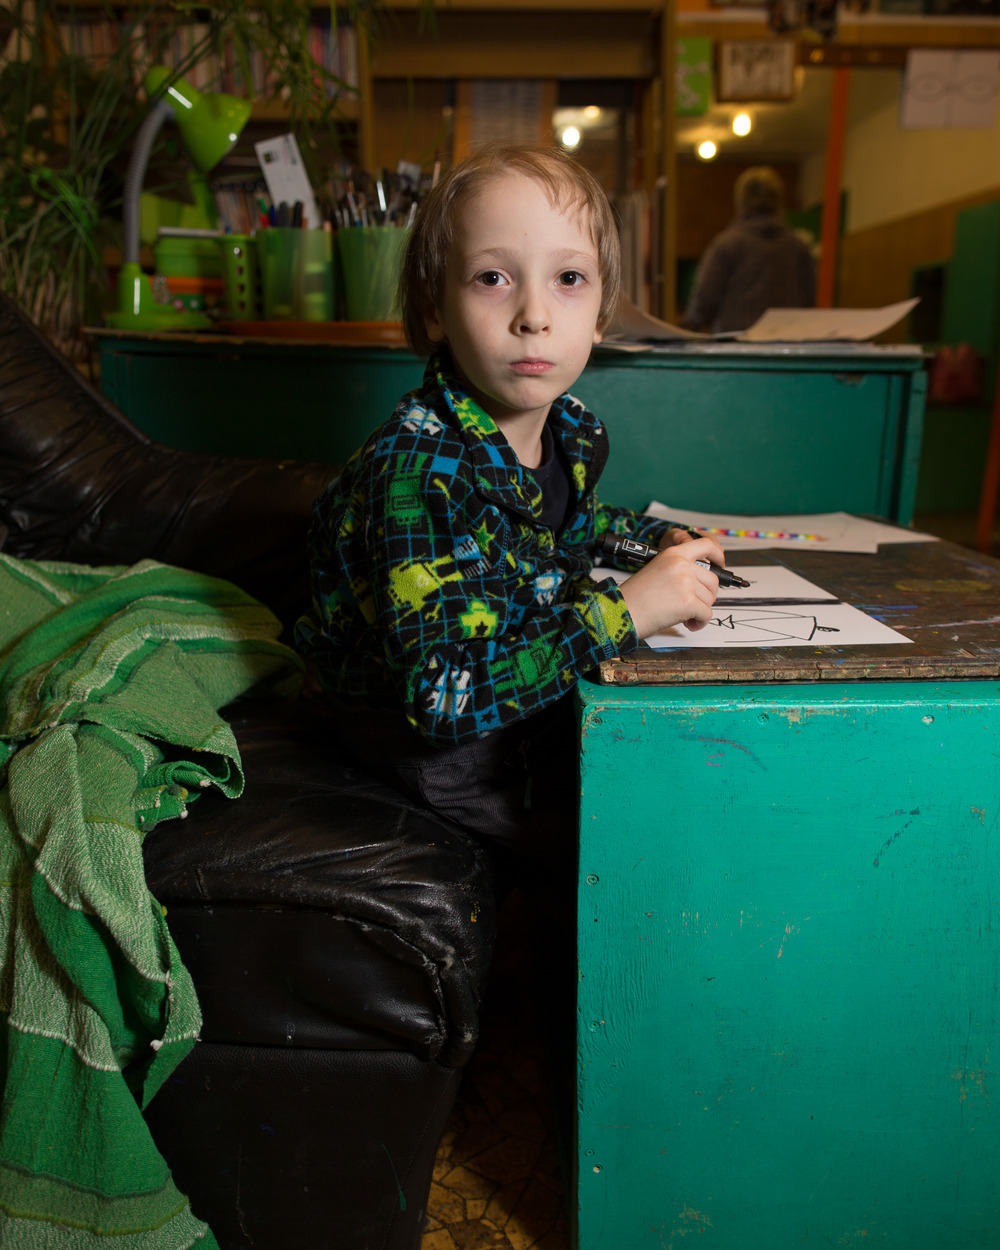 Nikita Sokolov, 6, draws frames for a cartoon he is conceiving. The daycare and movie studio where he plays is inside the first building ever built in Akademgorodok, before the town's official beginnings in 1957.